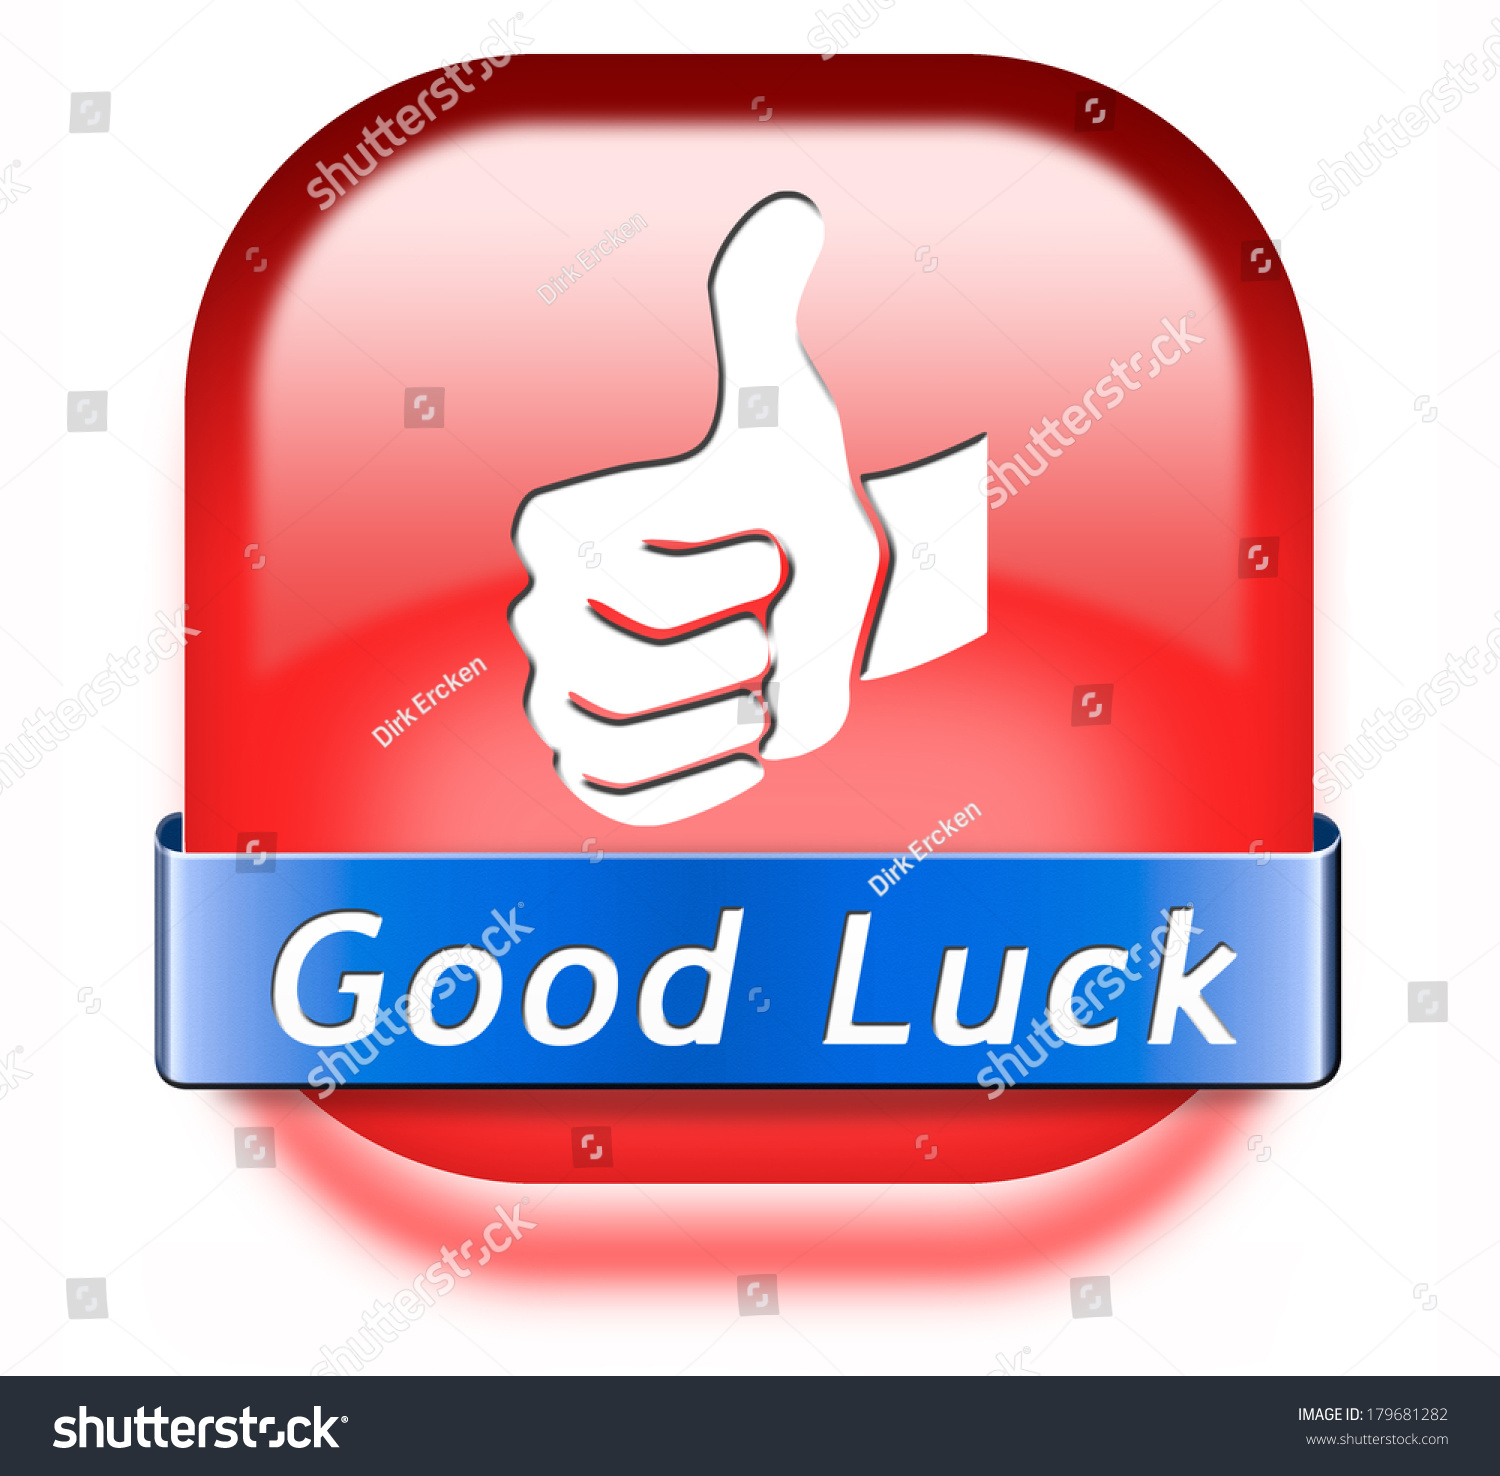 good luck best wishes wish you the best of luck and fortune